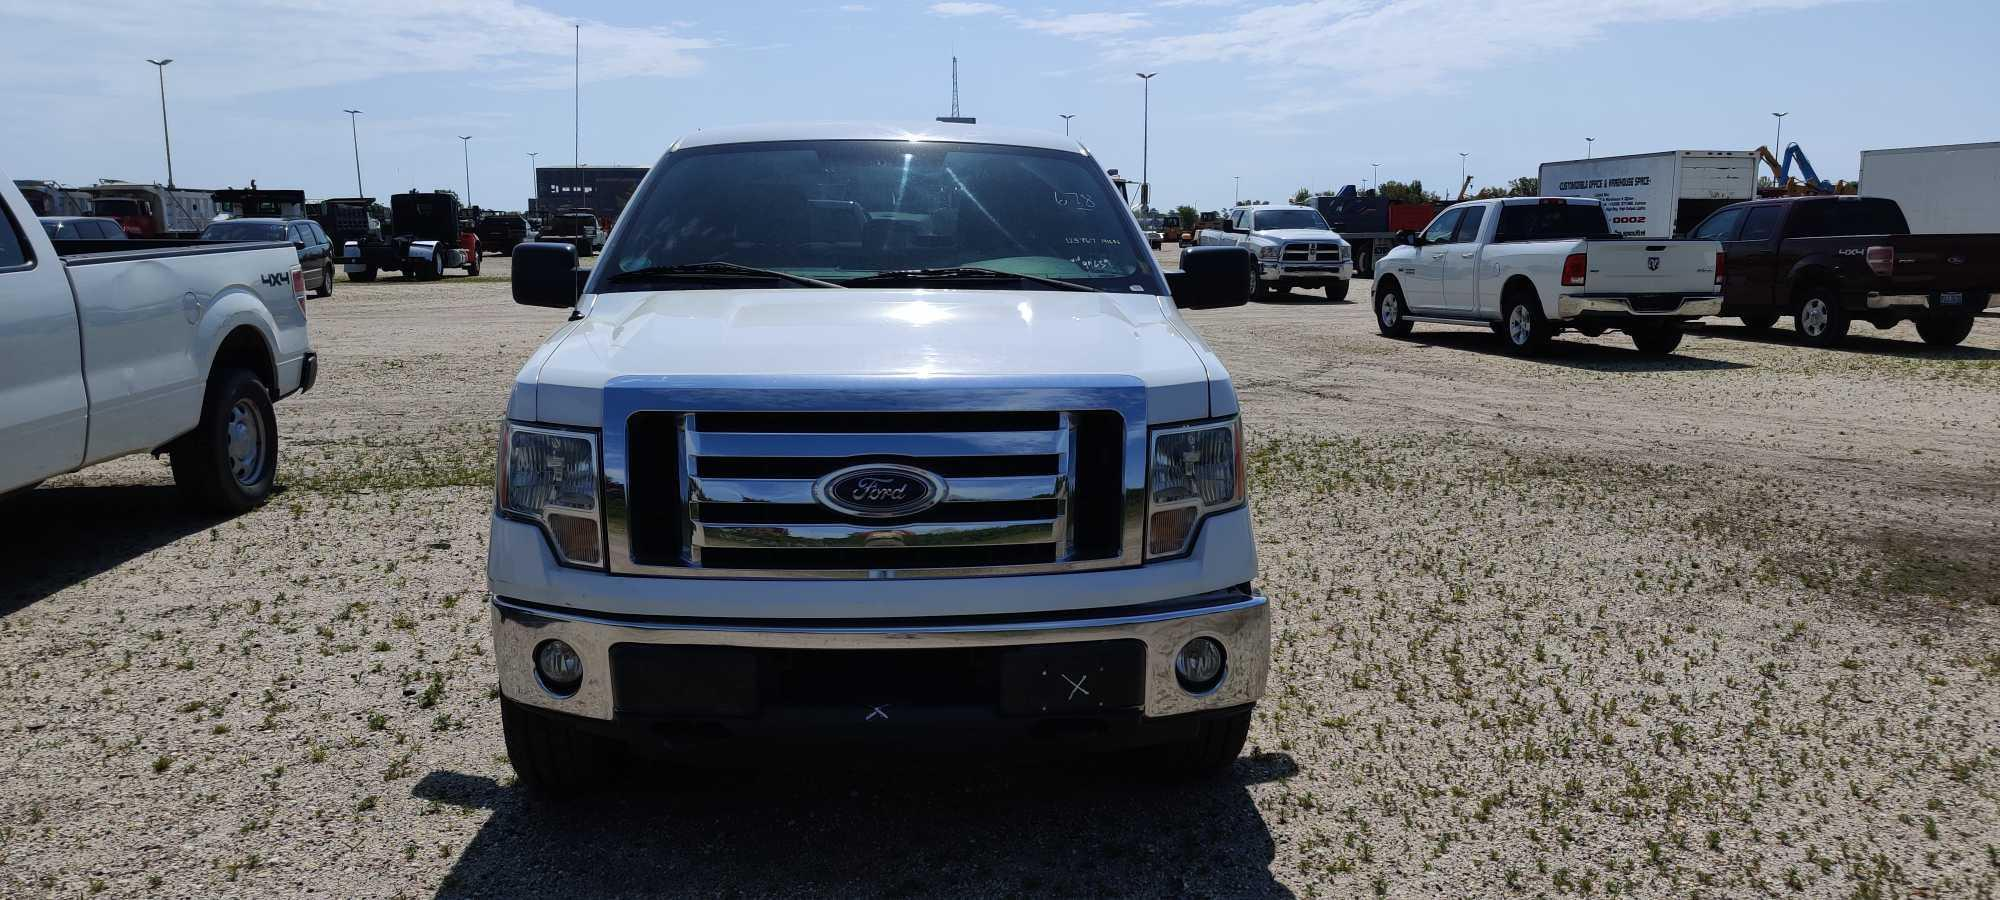 2013 FORD F150 PICKUP TRUCK VN:1FTFW1EF9DFB99659 4x4